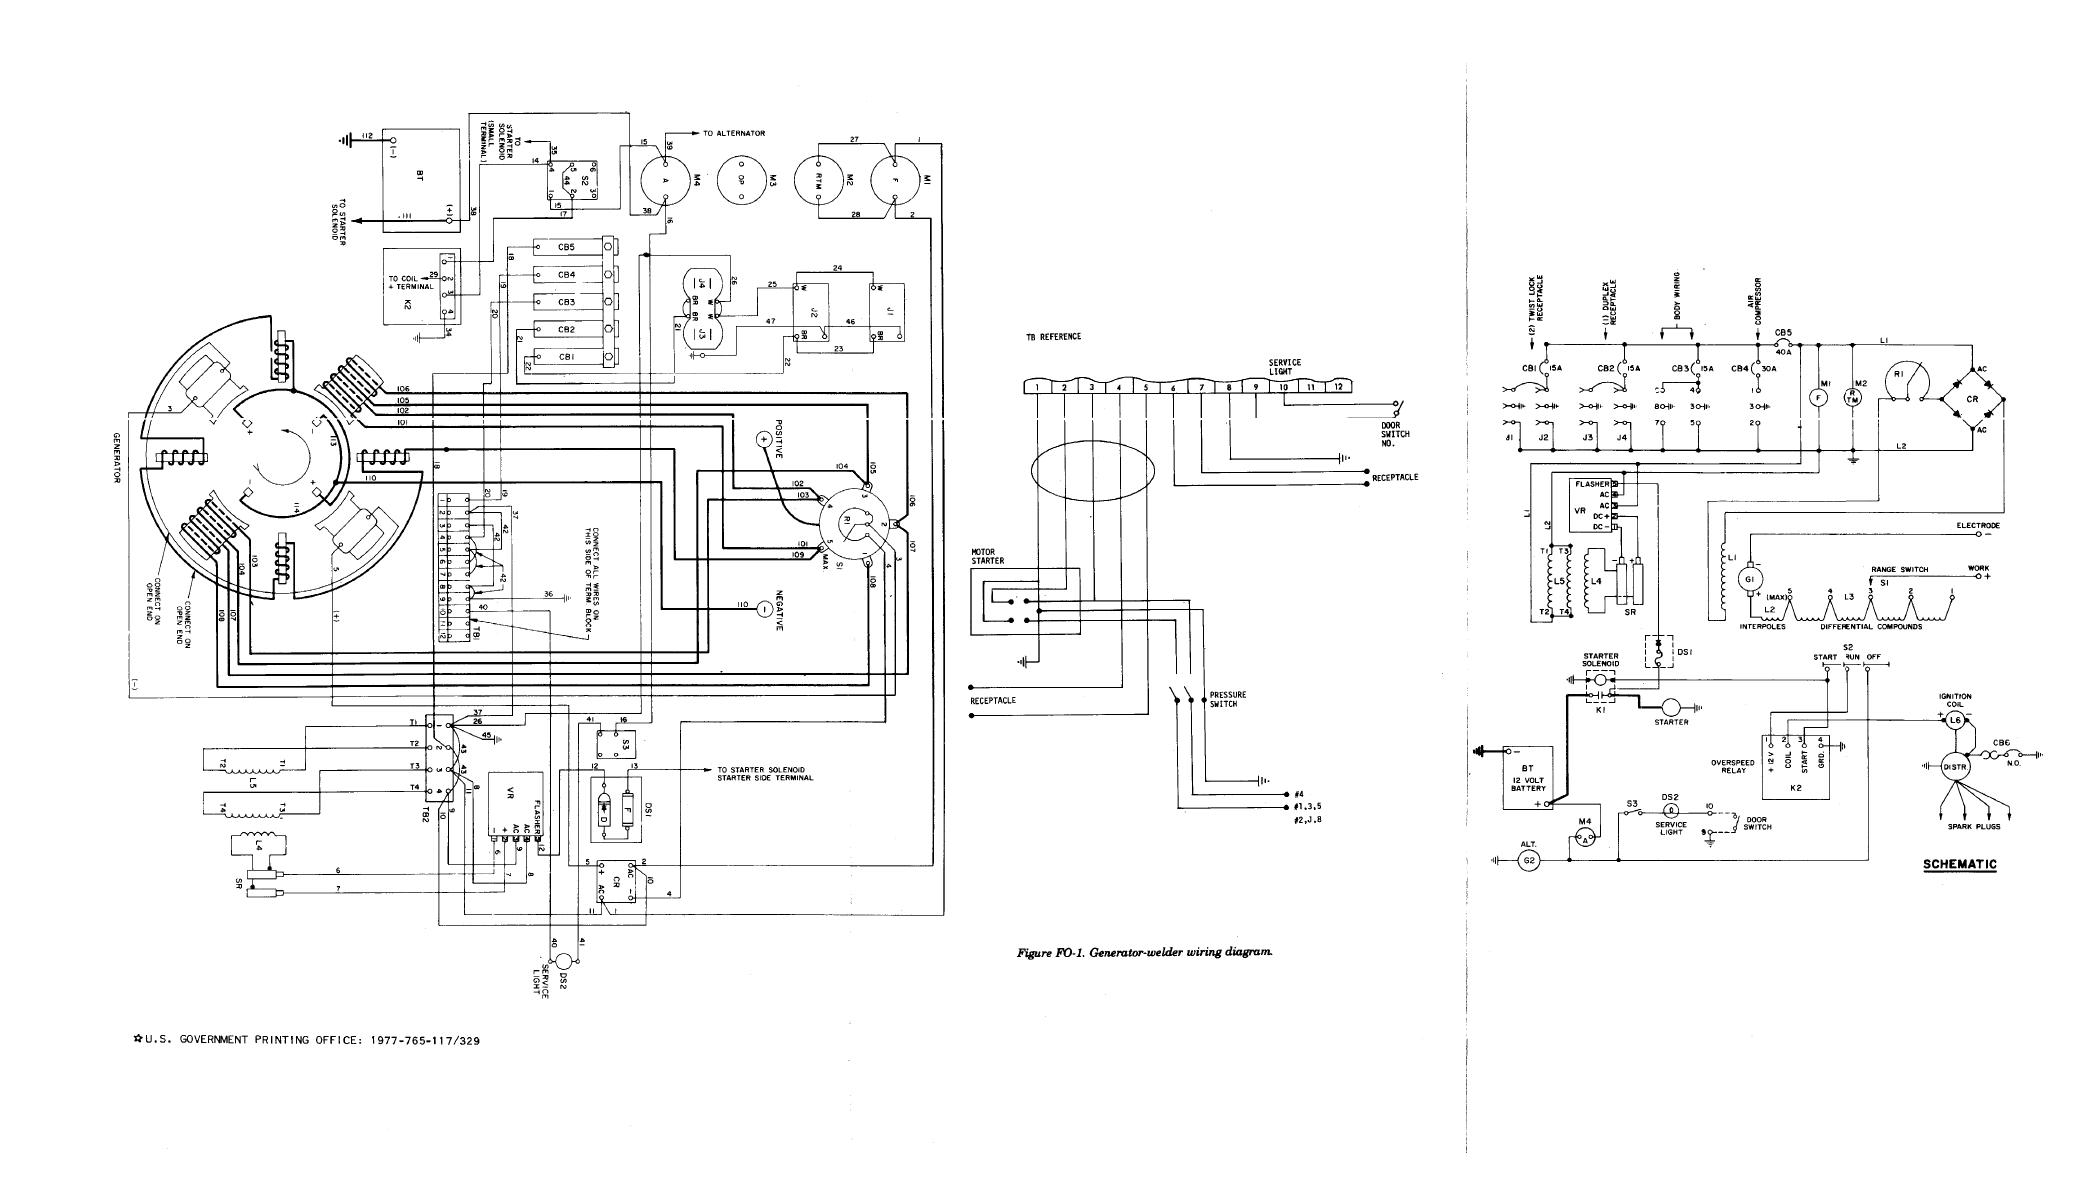 wiring schematic for prevost bus schematic for transformer